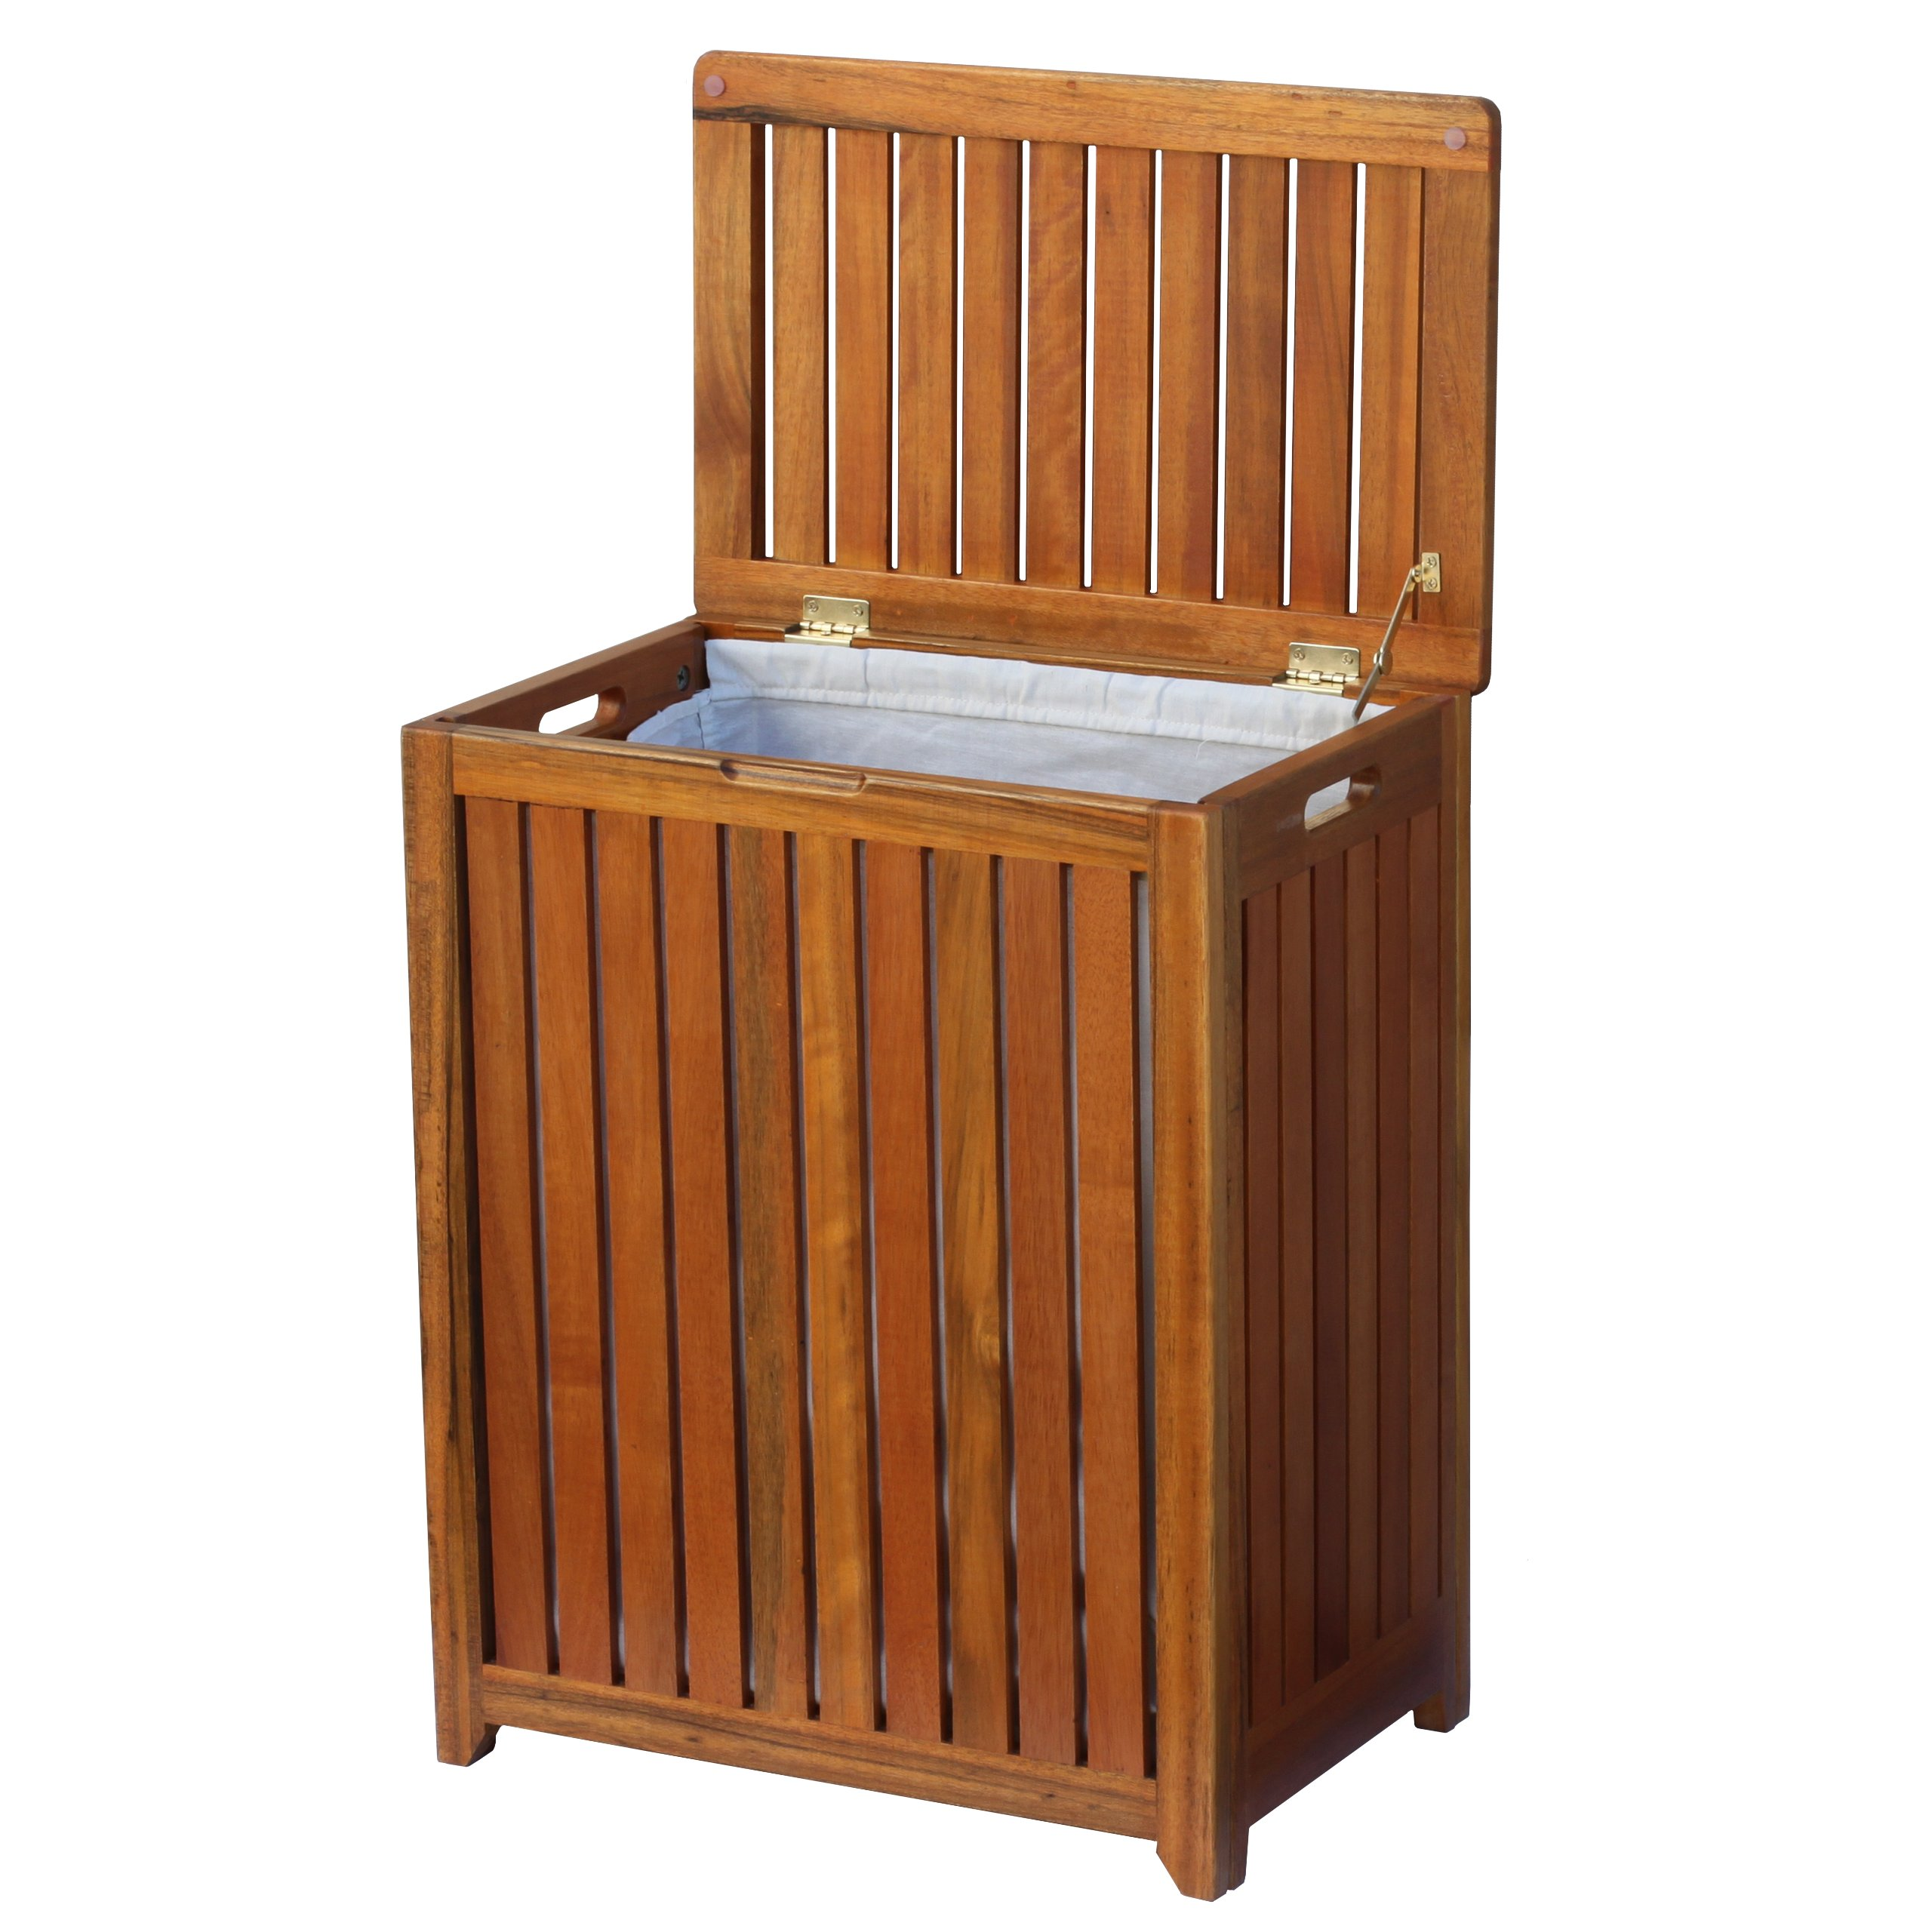 Oceanstar Solid Wood Spa Laundry Hamper